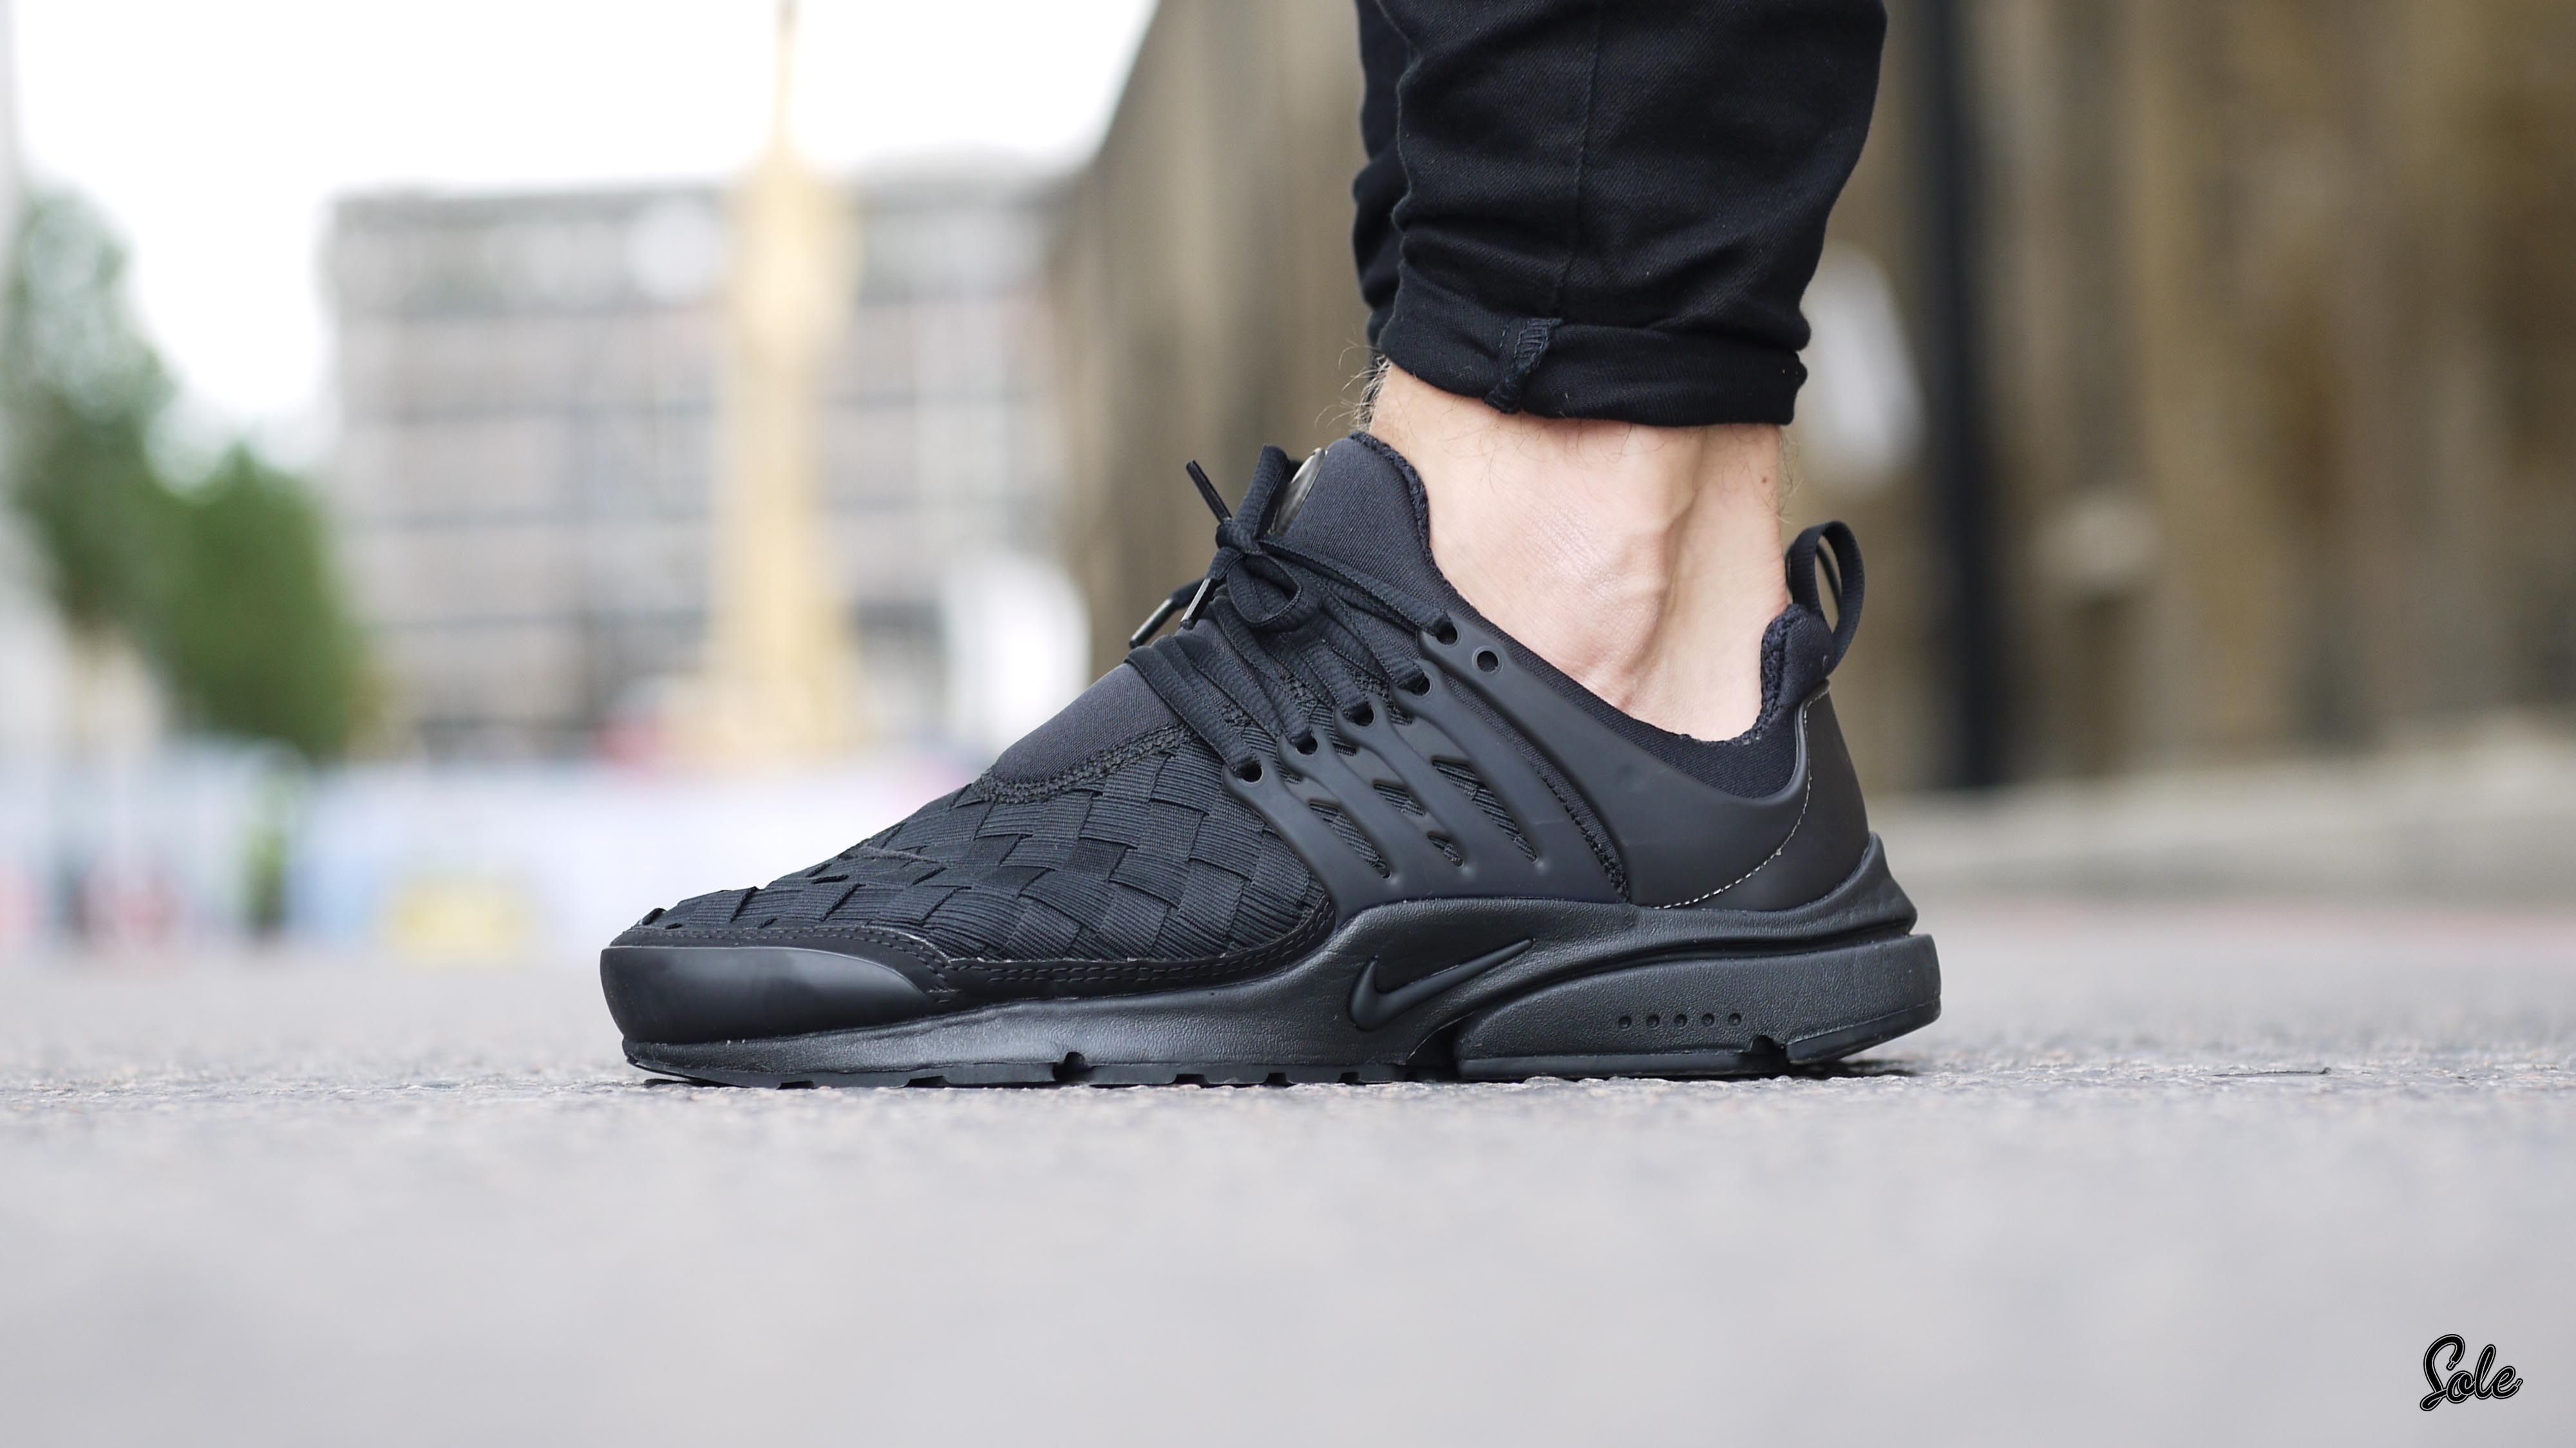 Air Presto Woven Black | Presto | Pinterest | Air presto